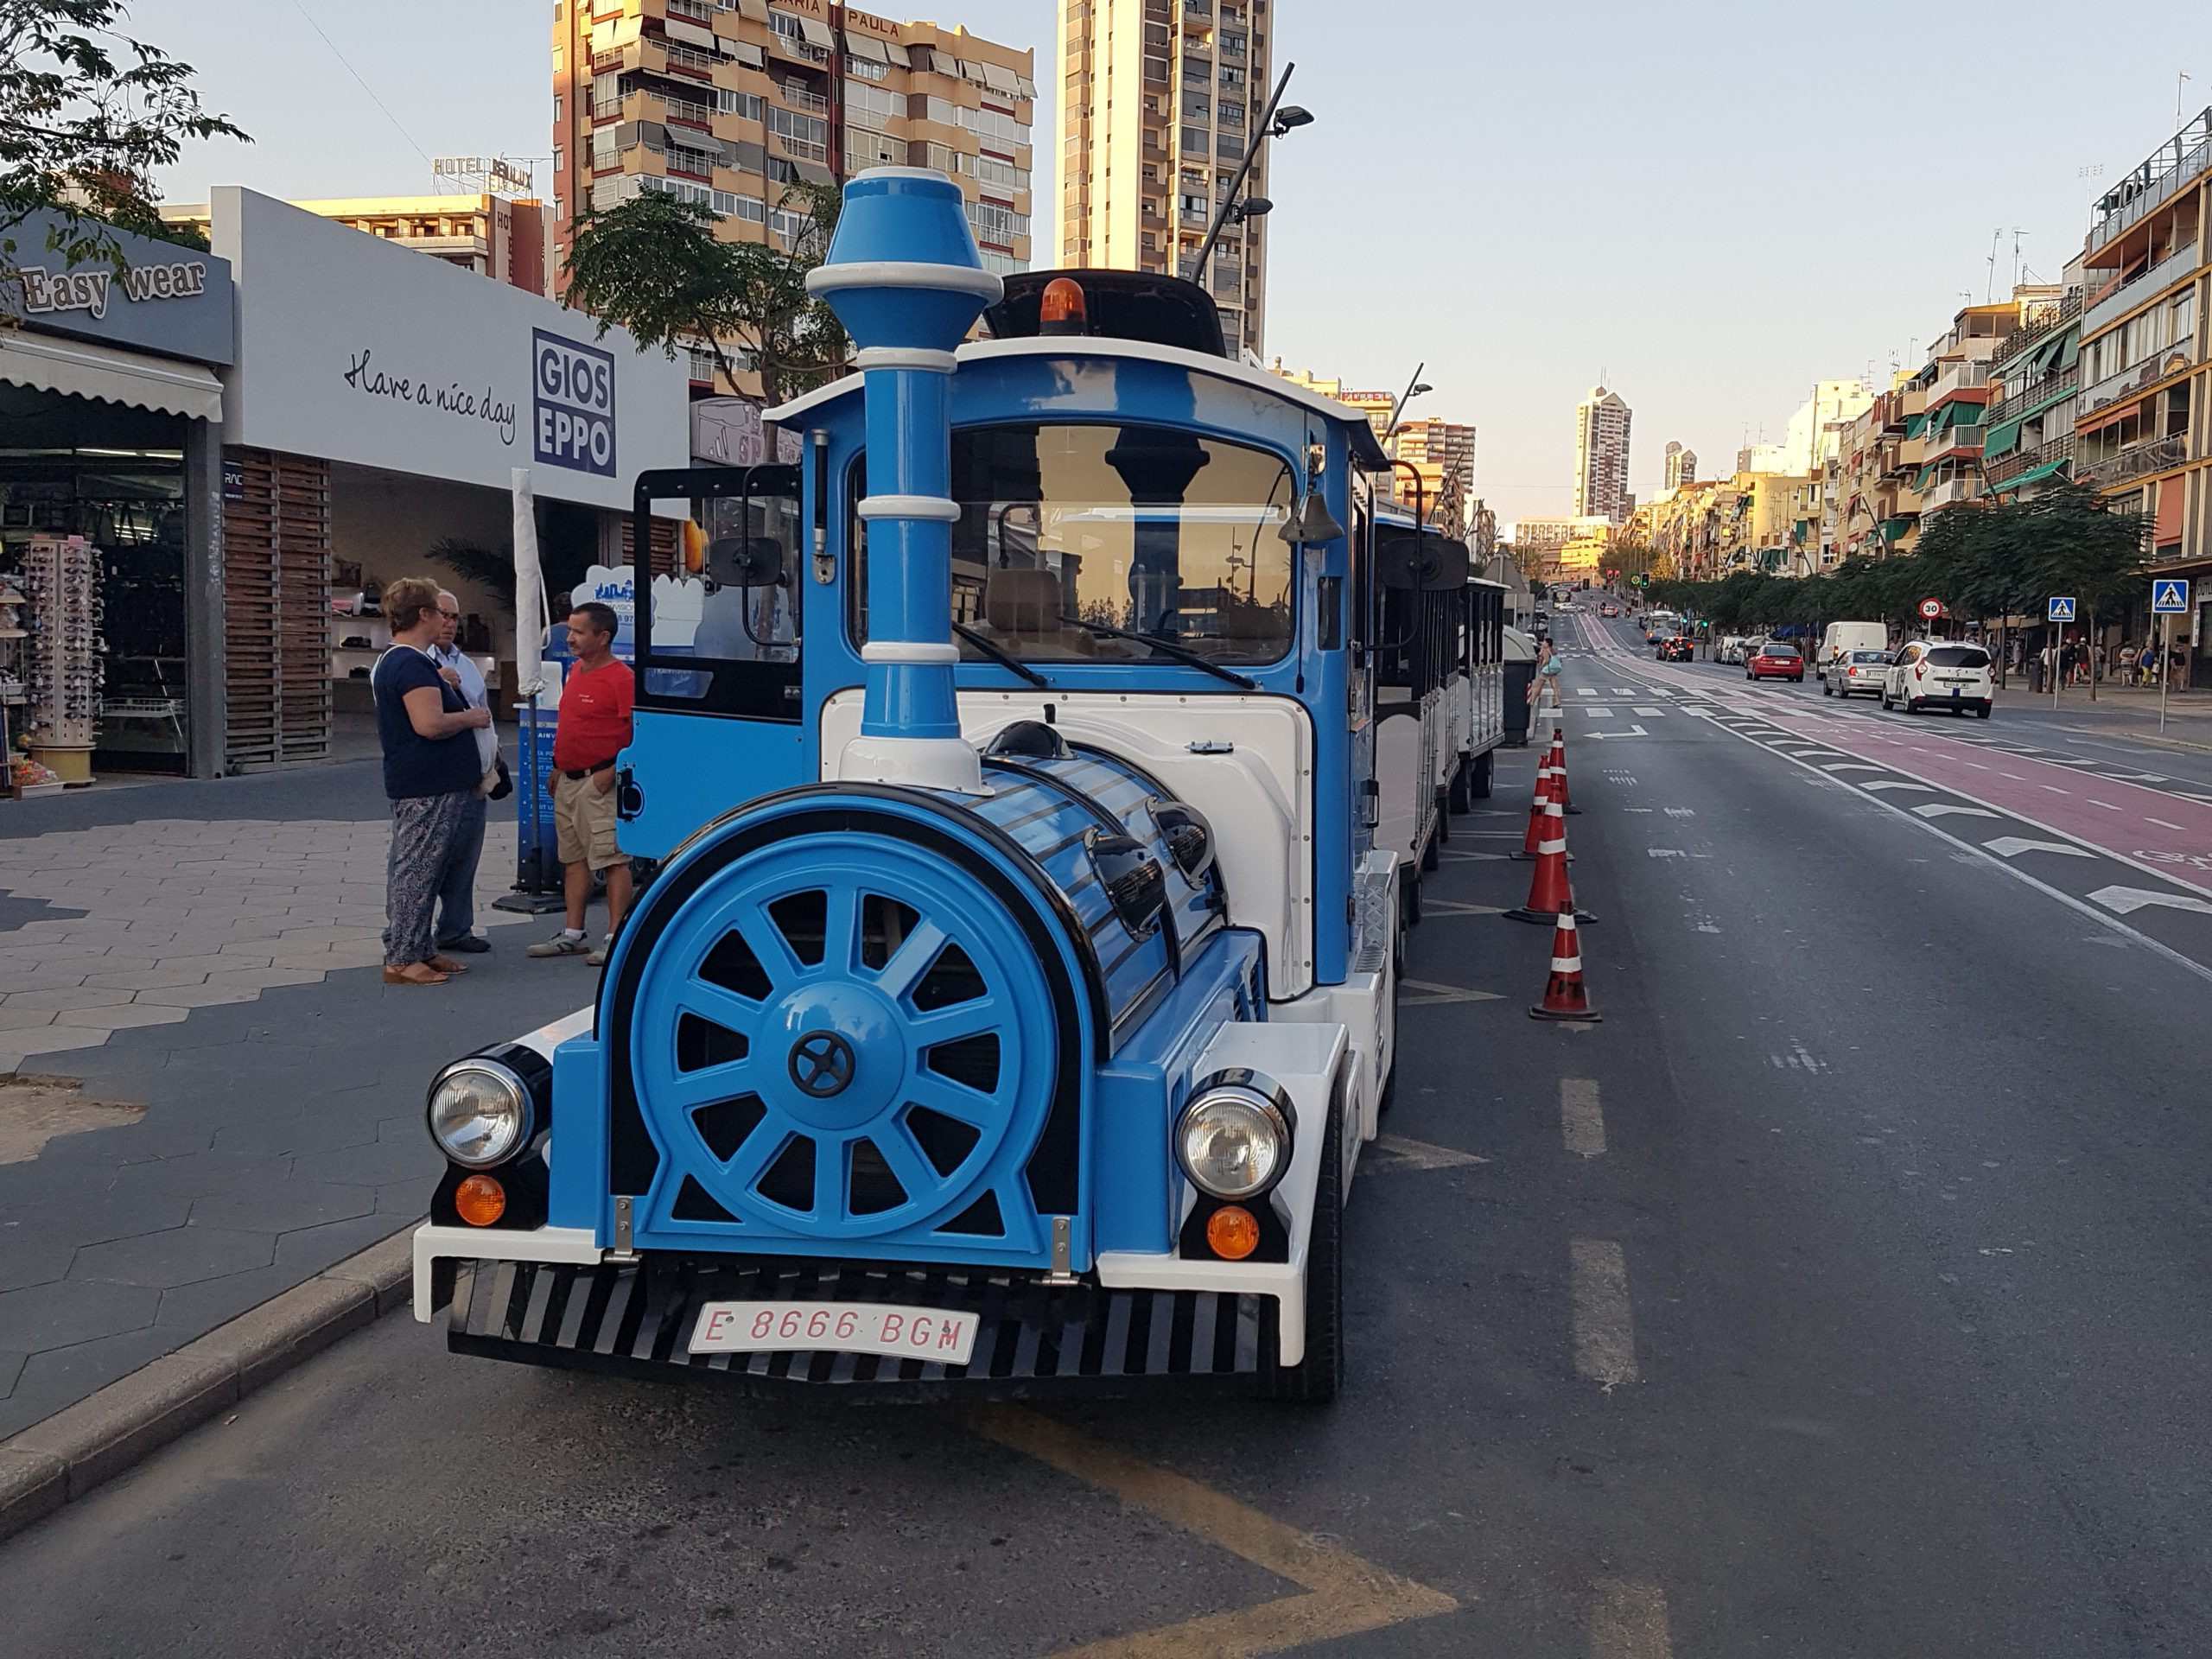 Benidorm City tour with Incoming Spain